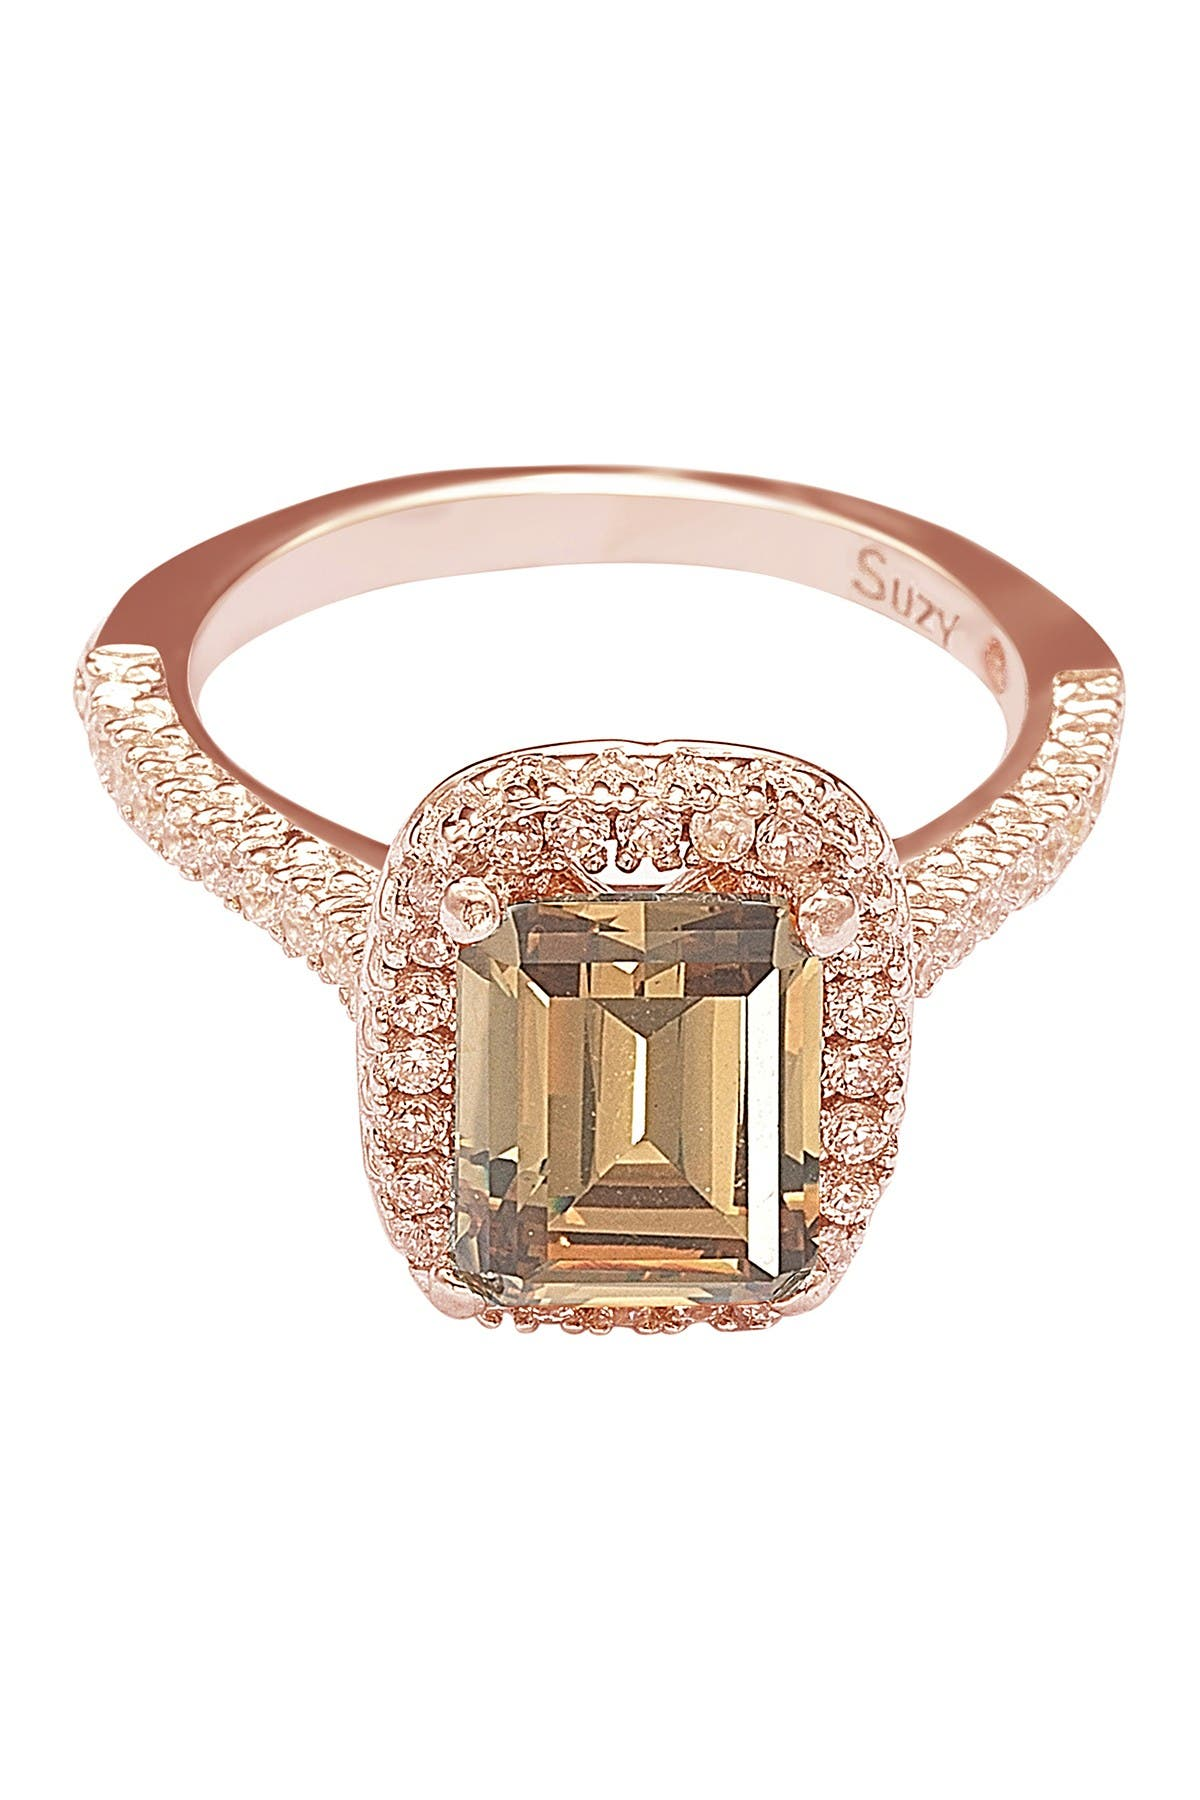 Image of Suzy Levian Rose Tone Sterling Silver Emerald Cut CZ Ring